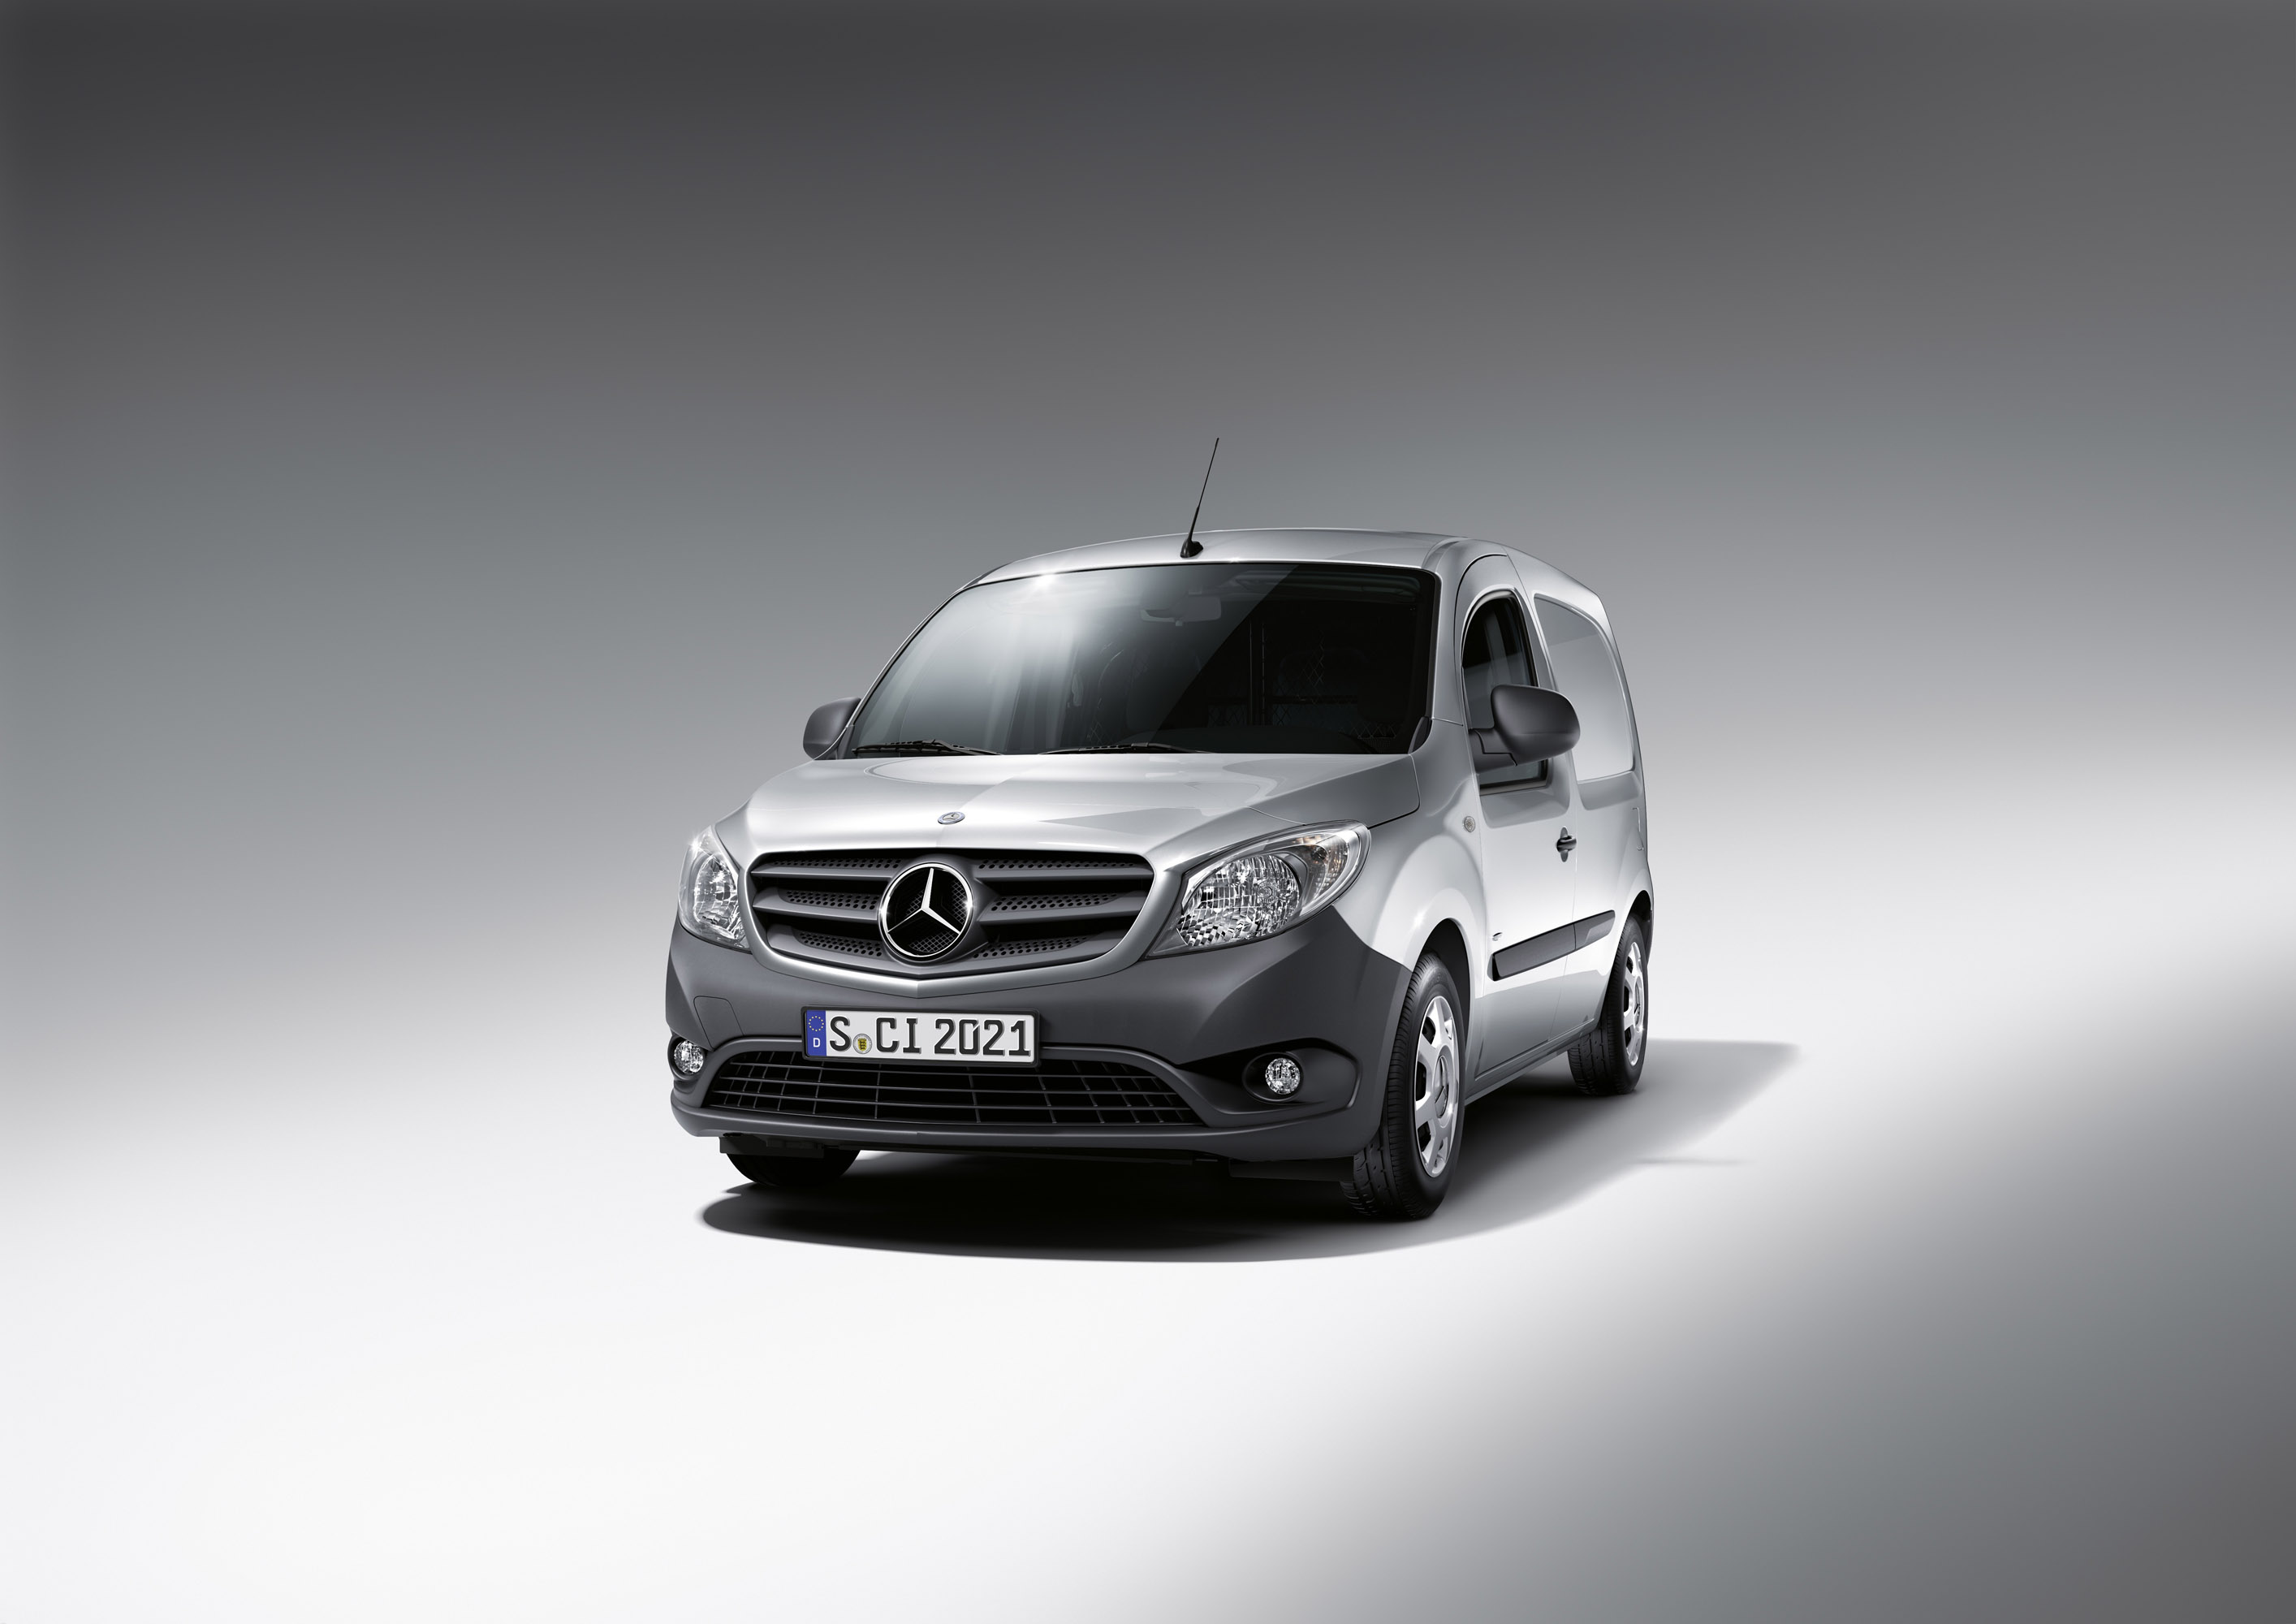 2012 mercedes benz citan a new family van. Black Bedroom Furniture Sets. Home Design Ideas